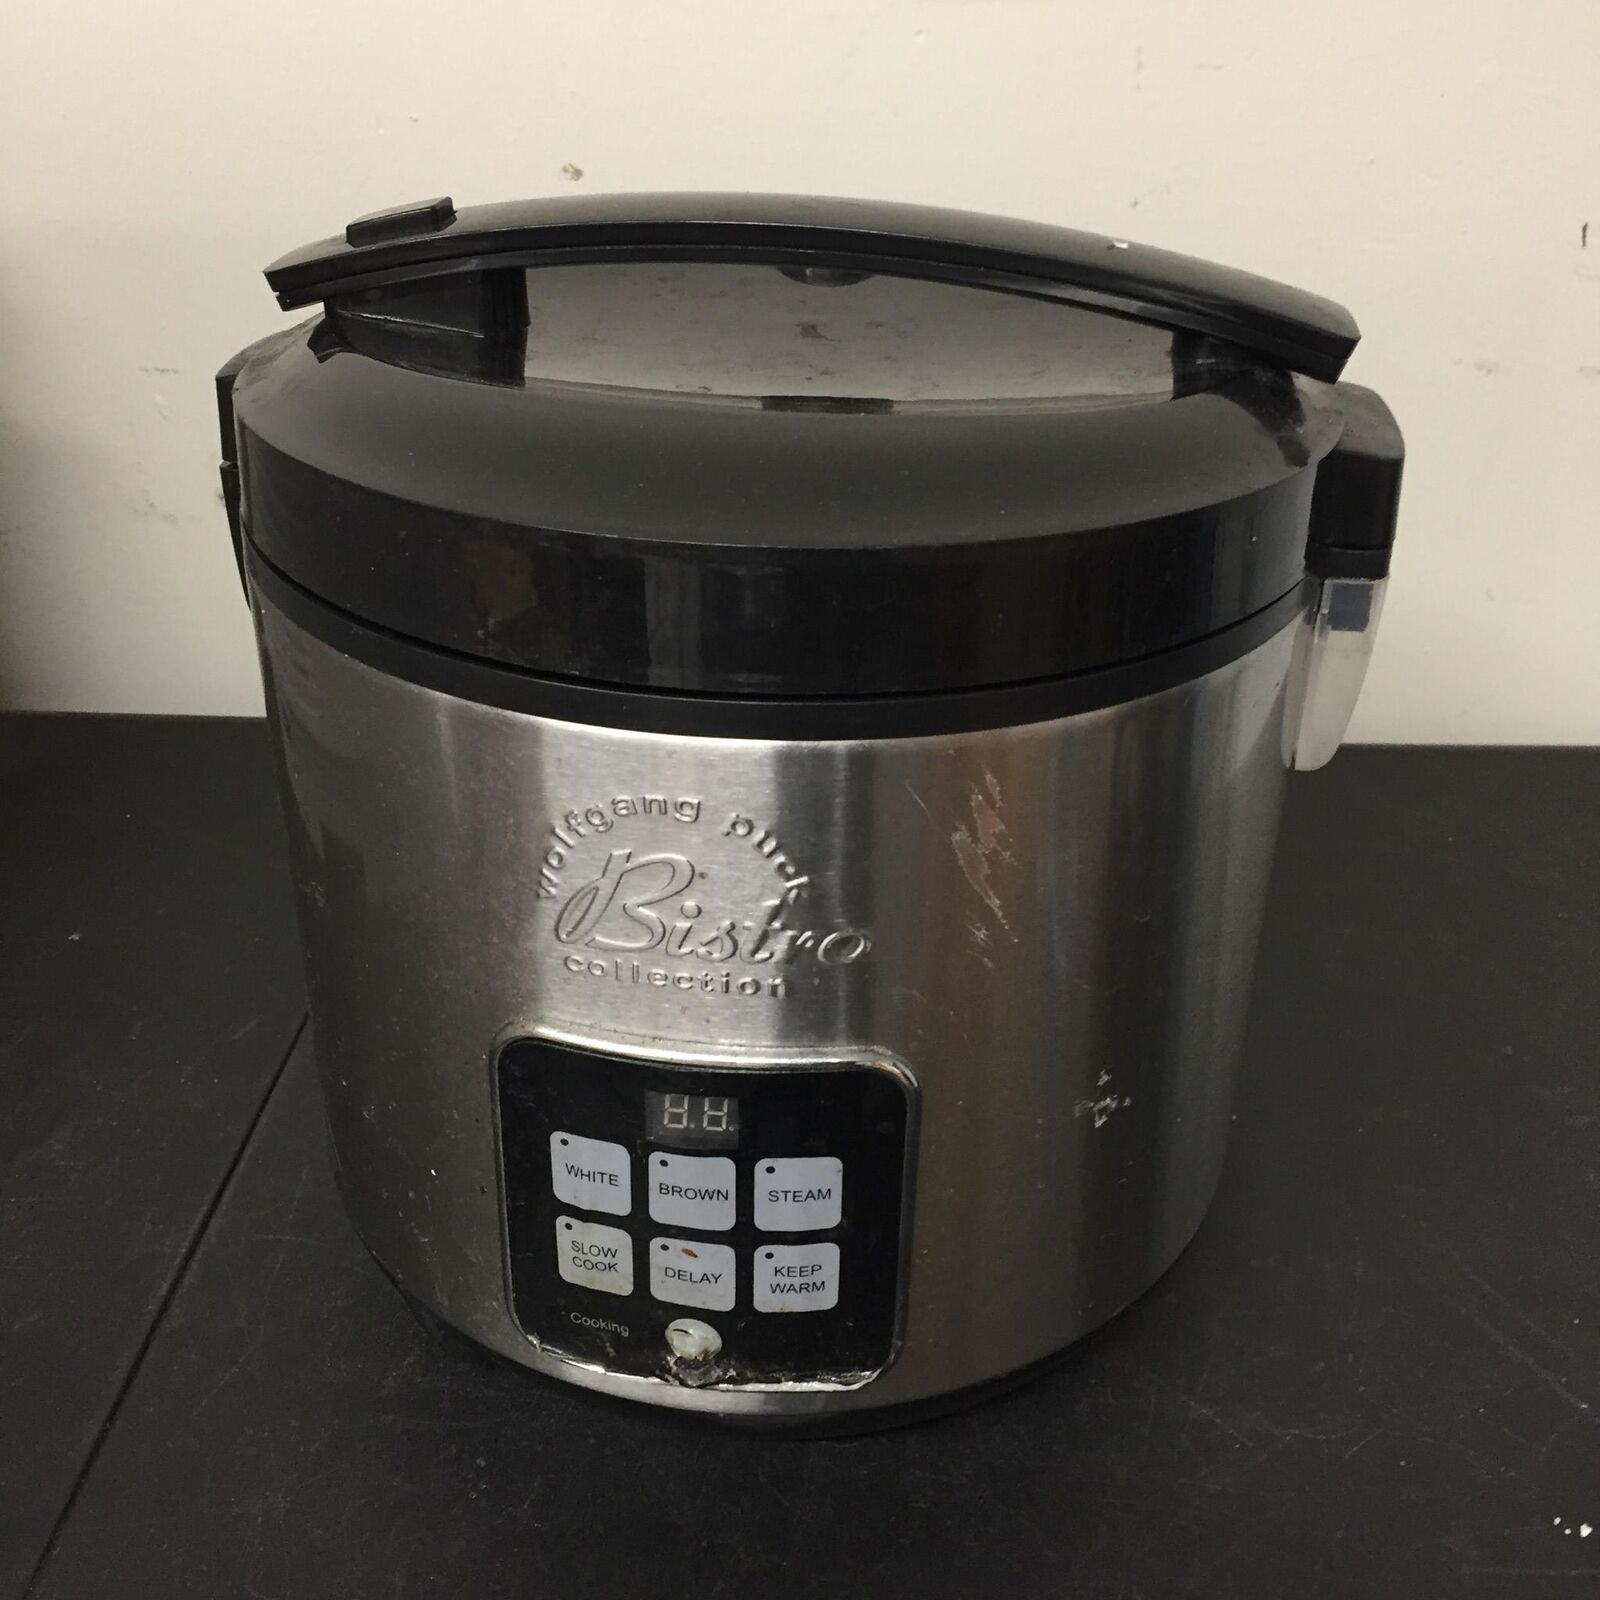 Wolfgang Puck Bistro Collection Bdrcrd010 10 Cup Rice Slow Cooker Stainless For Sale Online Ebay